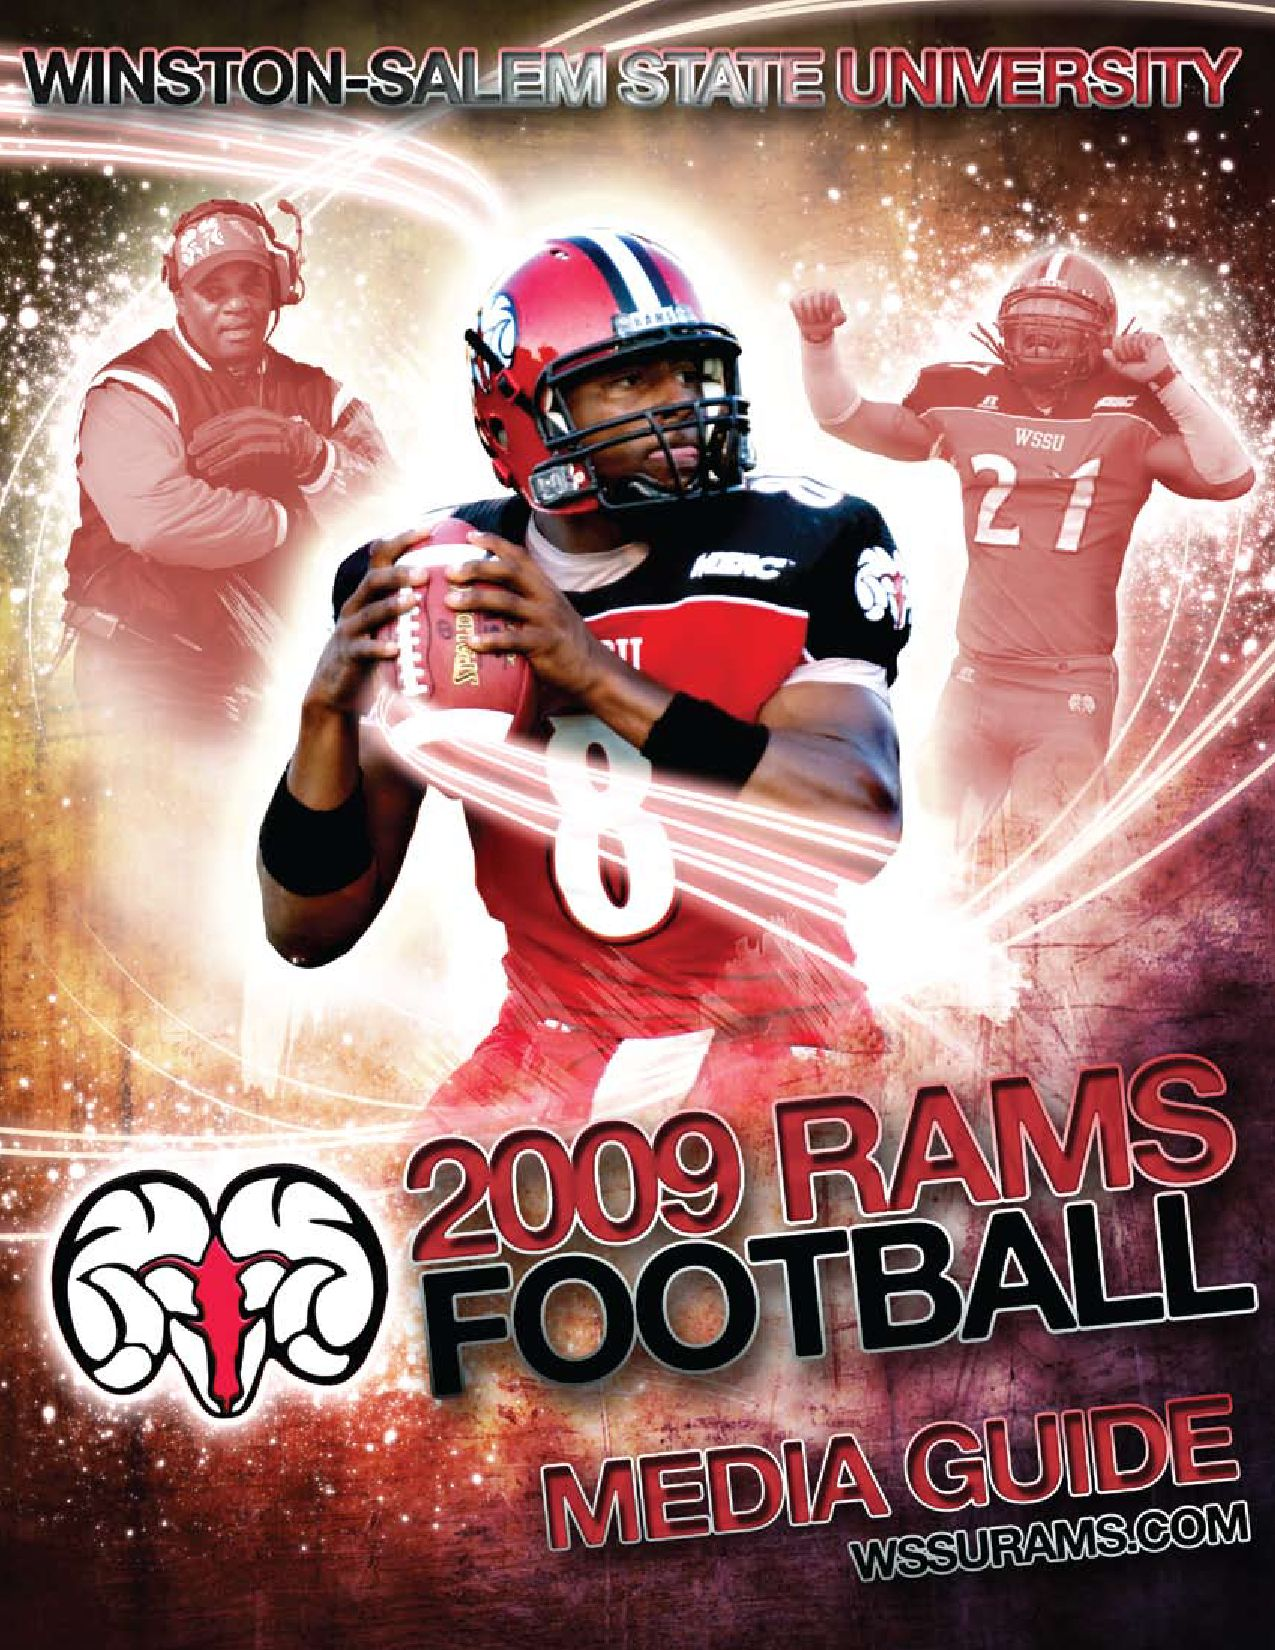 Hot 2009 WSSU Football Media Guide by Winston Salem State University  EuT8bkoz